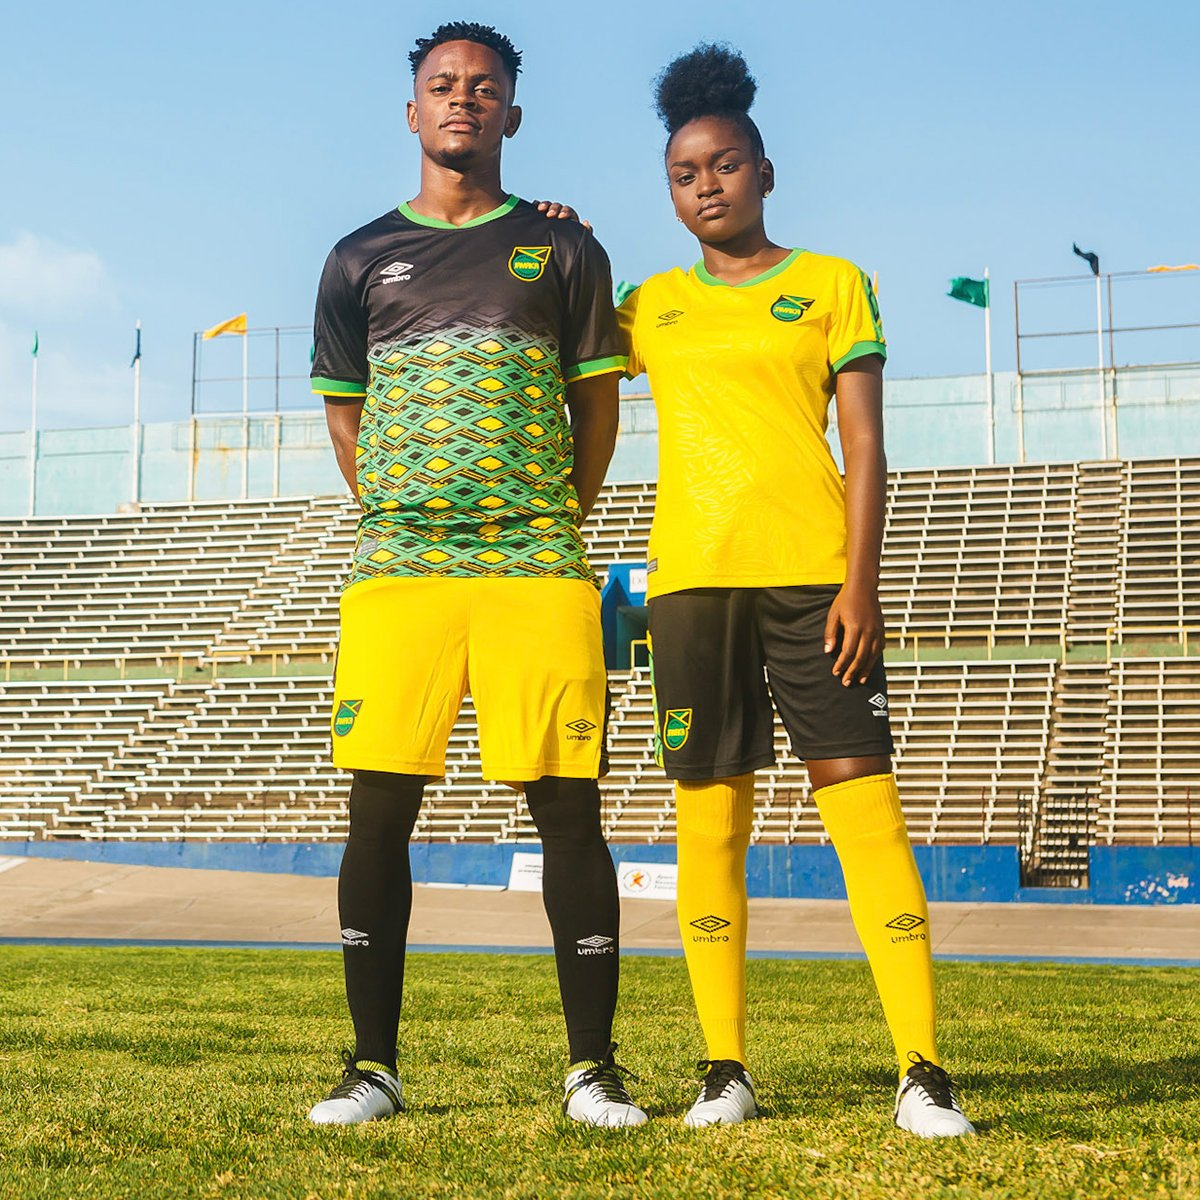 5537b09b507 2019 FIFA Women's World Cup Kit Overview: Unique Kits From Adidas ...